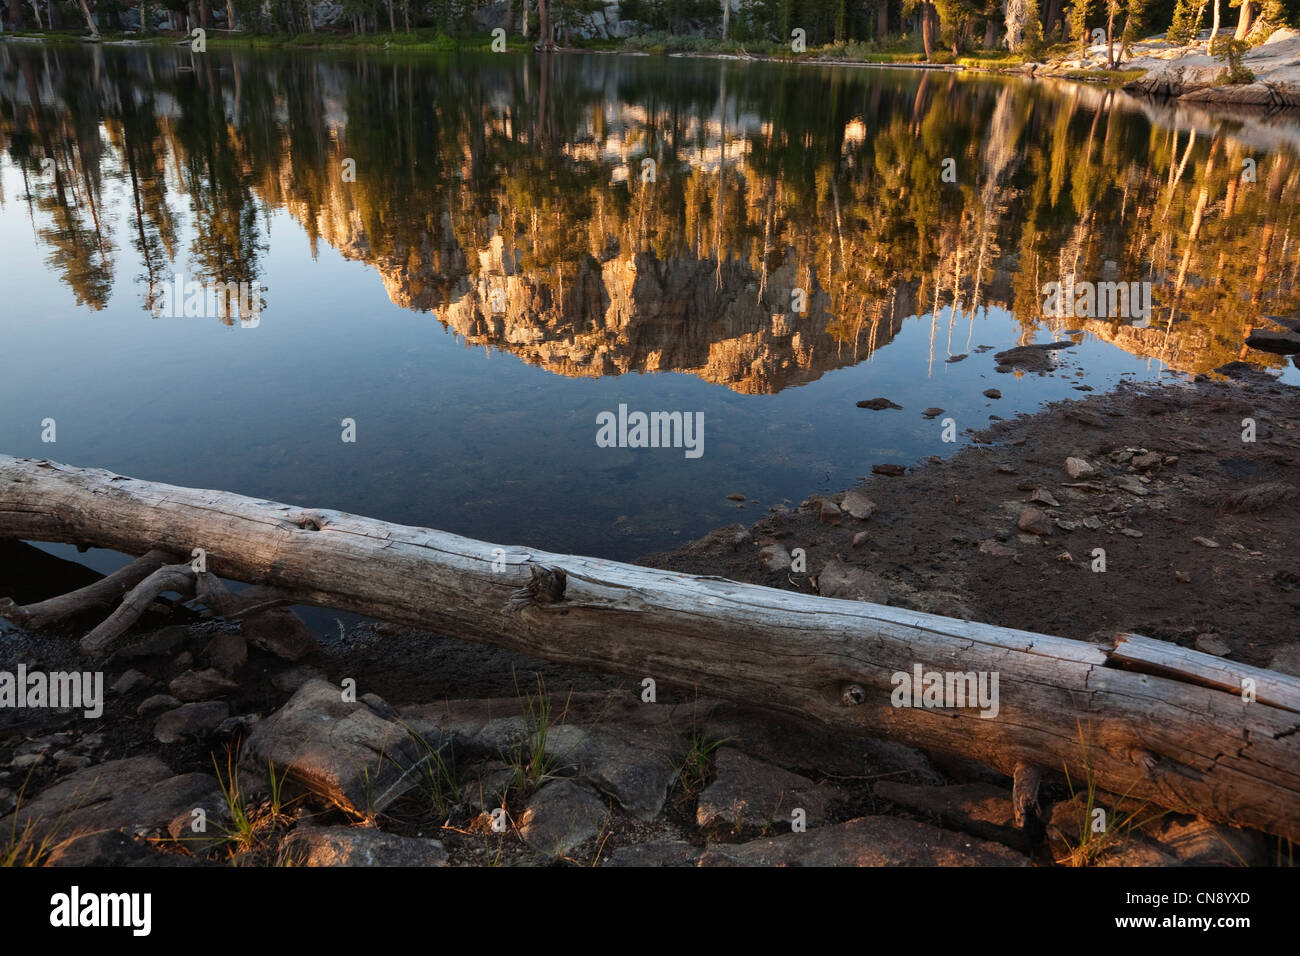 Reflection in Gem Lake, Emigrant Wilderness Area, California, USA - Stock Image